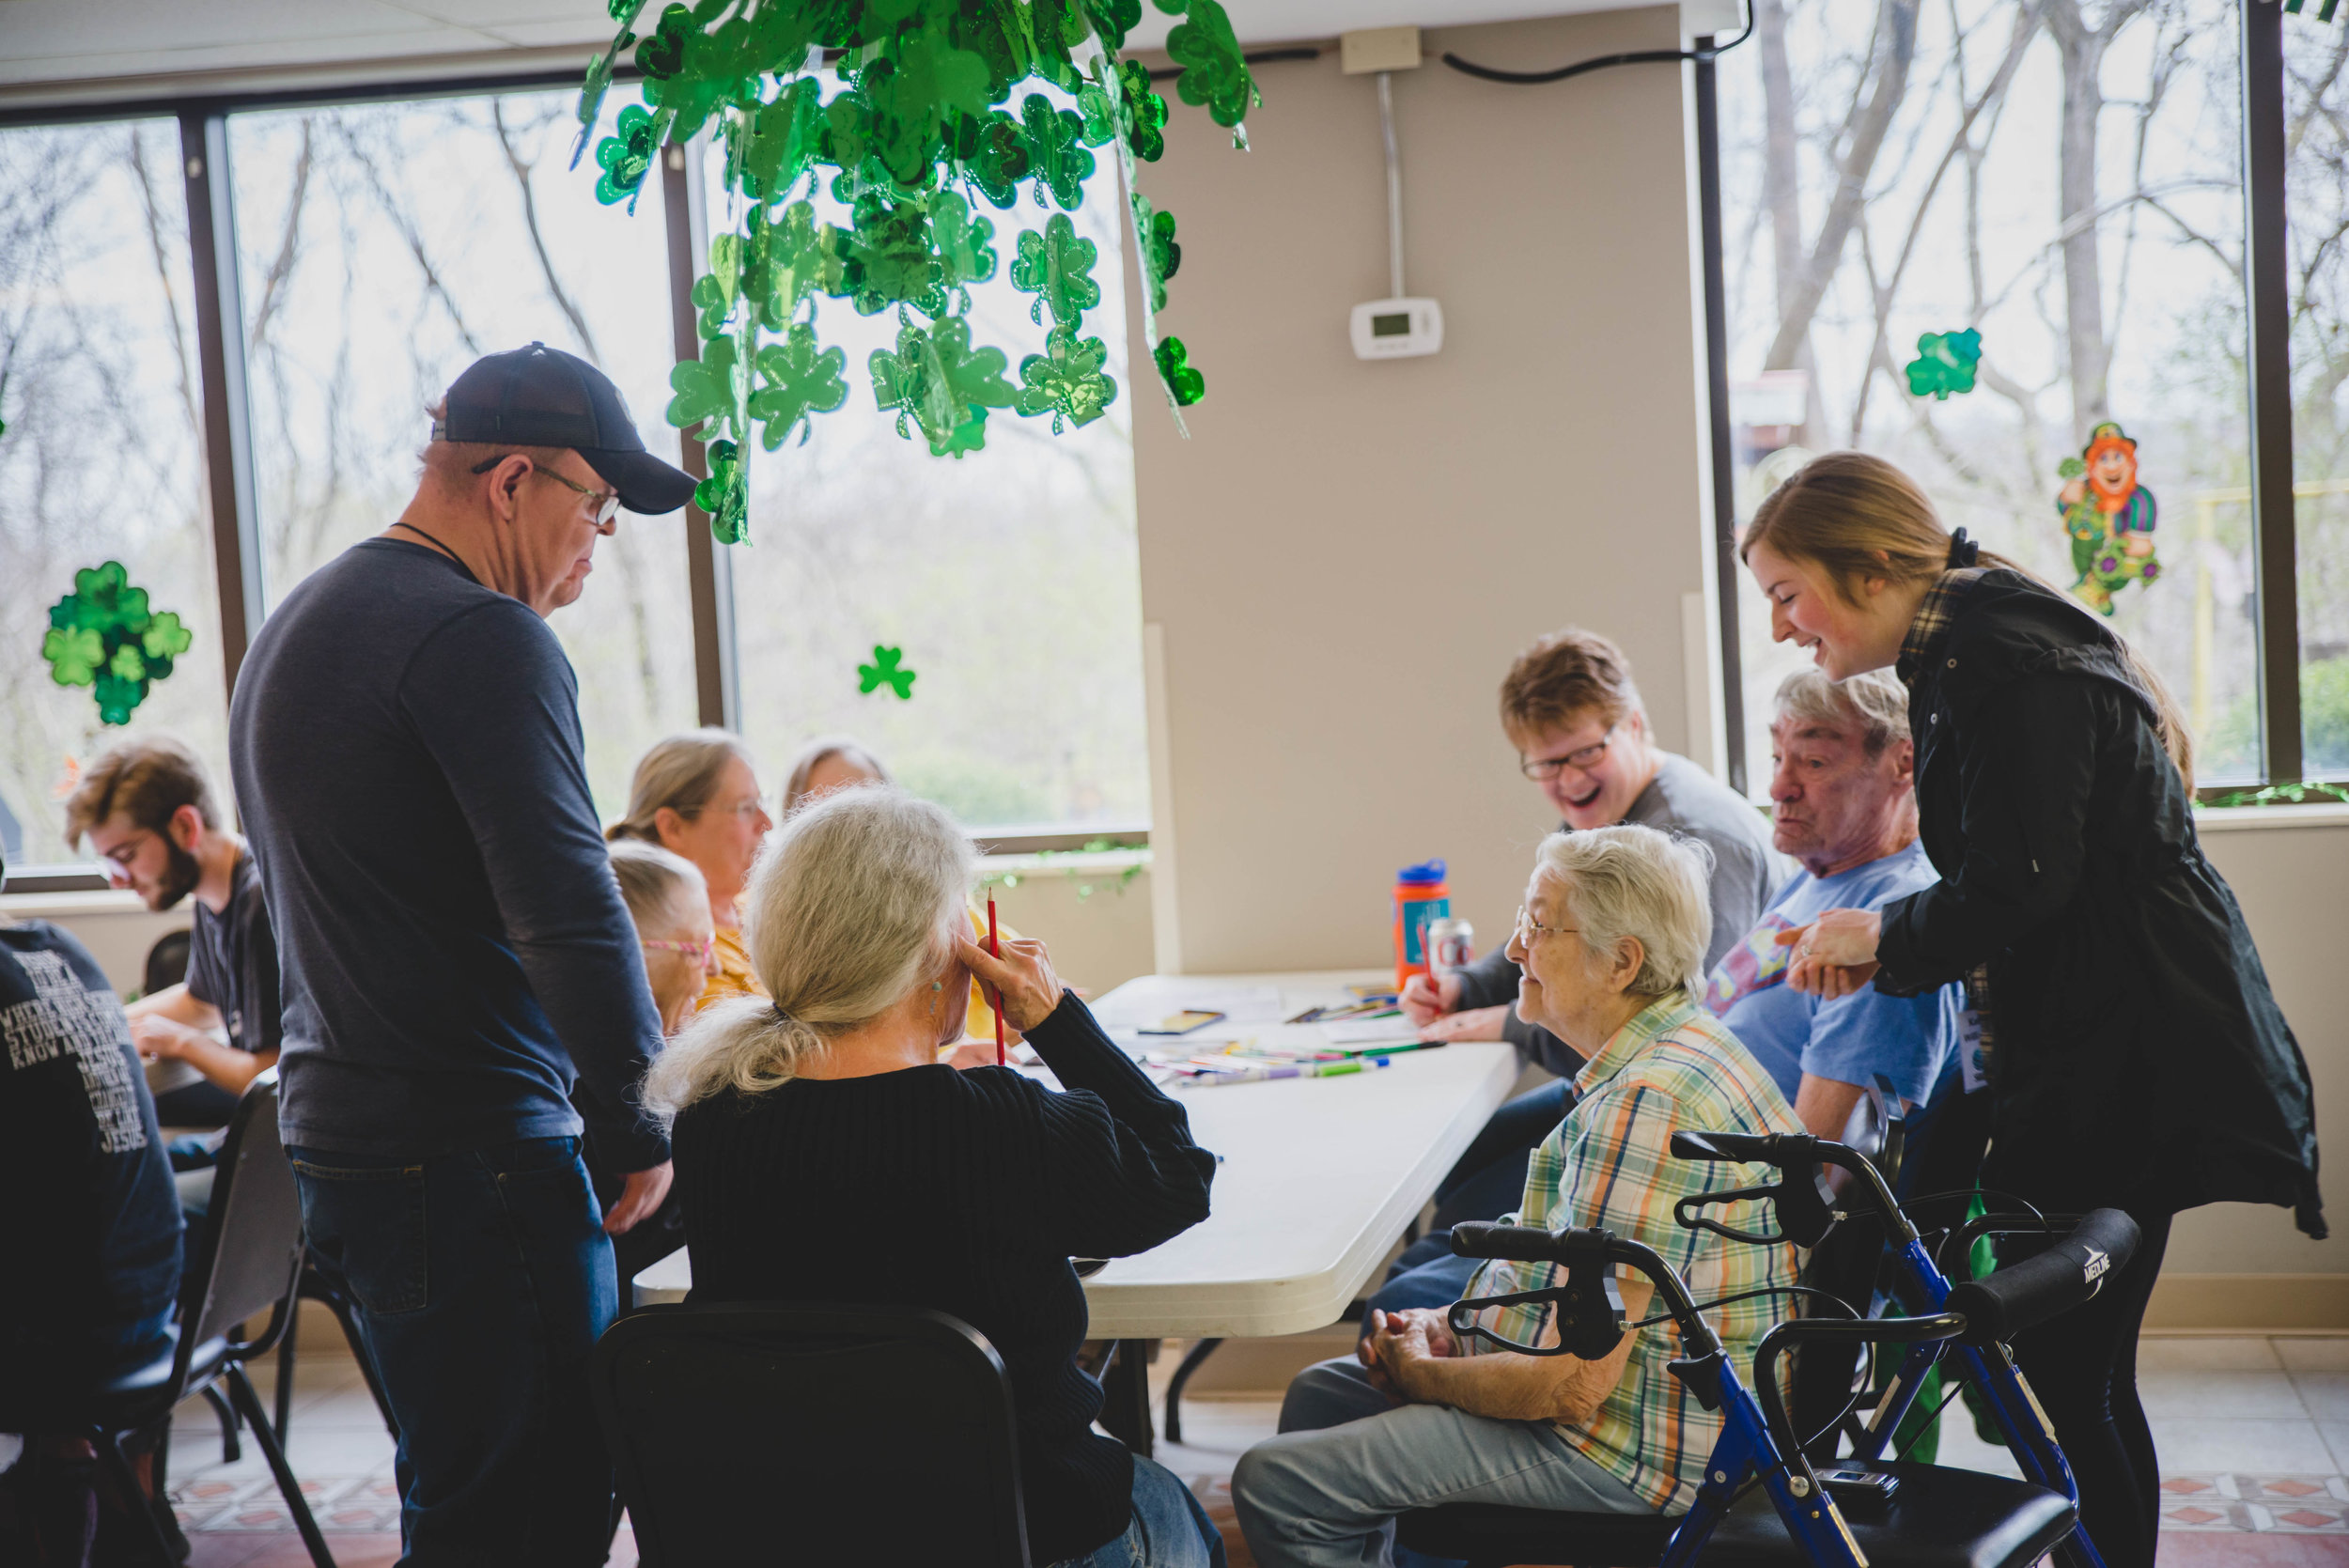 A group of college students from Michigan spent their spring break in Nashville. Visiting elderly at a senior citizen housing complex, students discovered that what many of the residents wanted was an opportunity to share their stories and experiences.